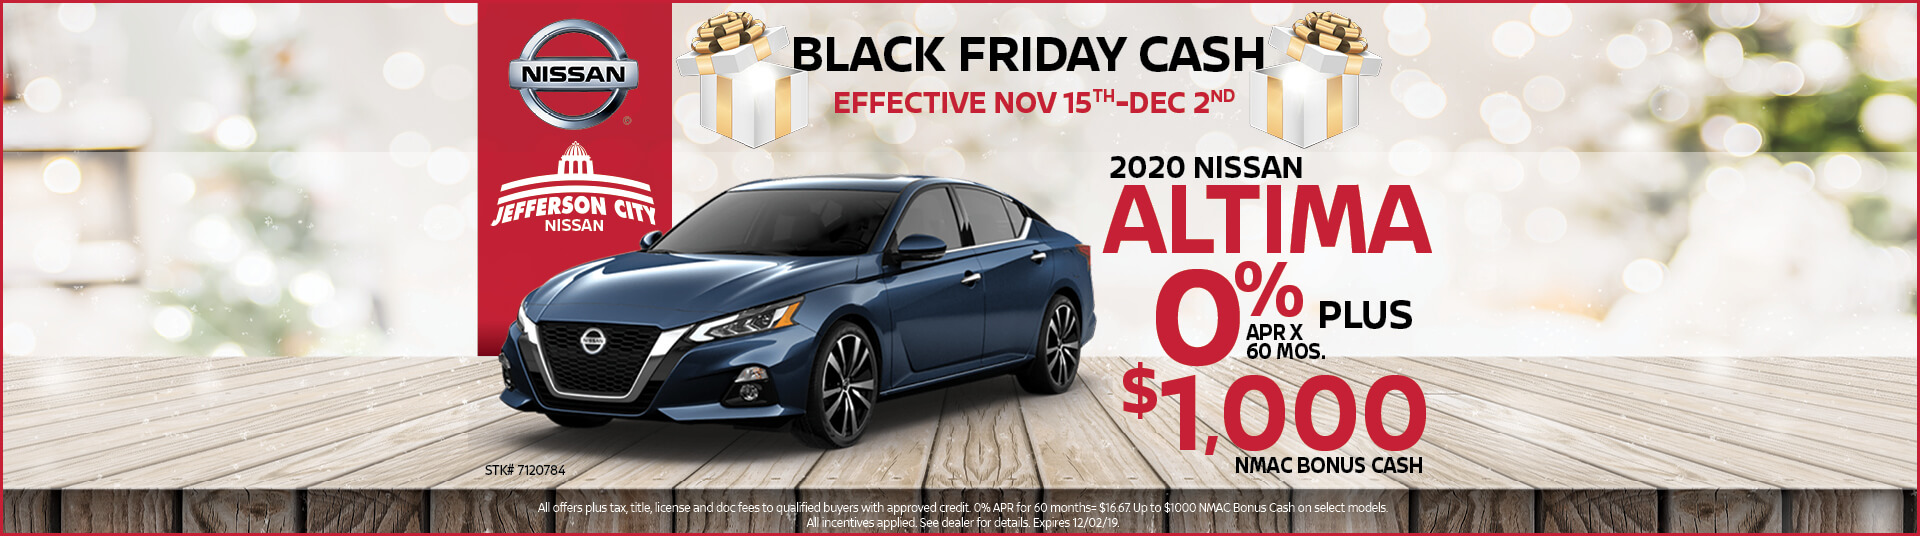 Get 0% APR x mos. + up to $1,000 in Nissan Rebates on a 2020 Nissan Altima